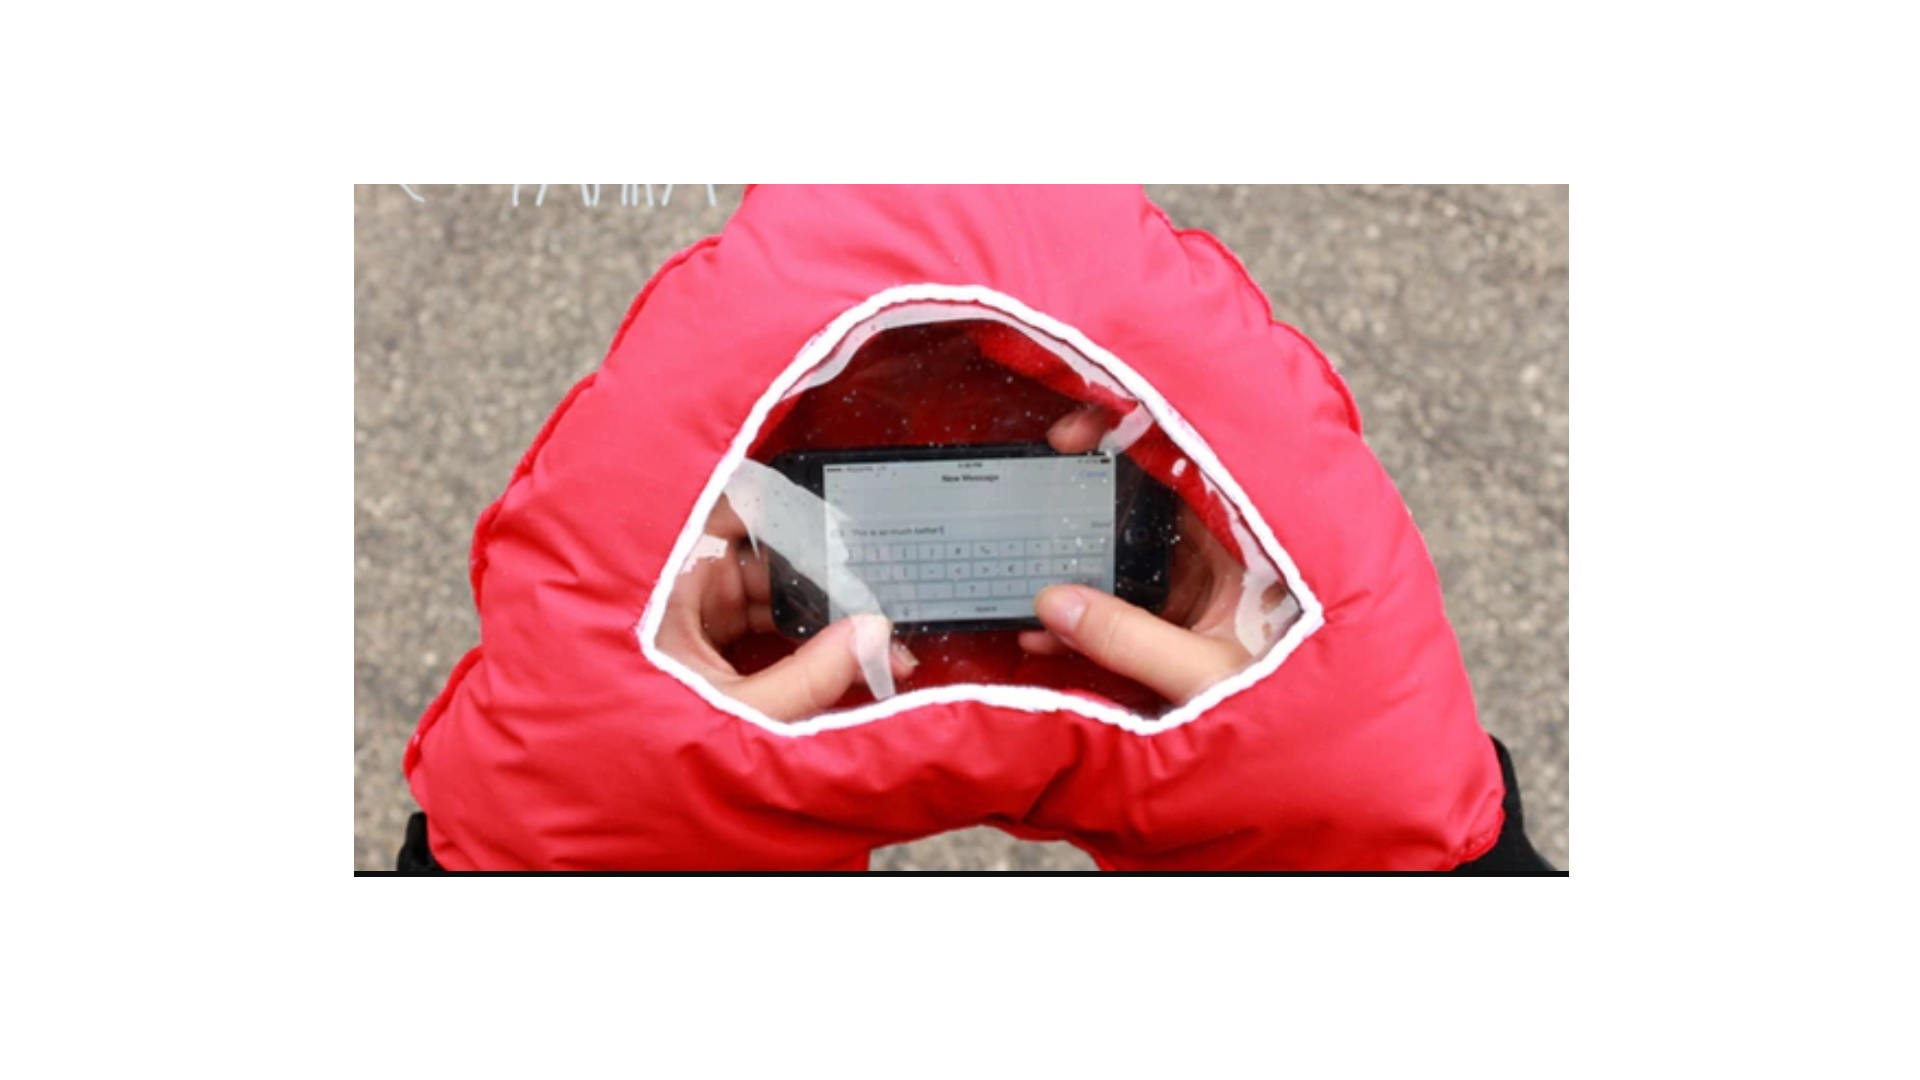 Tahka hand warmer in use with SmartPhone. Source: Mina Mais, KickStarter